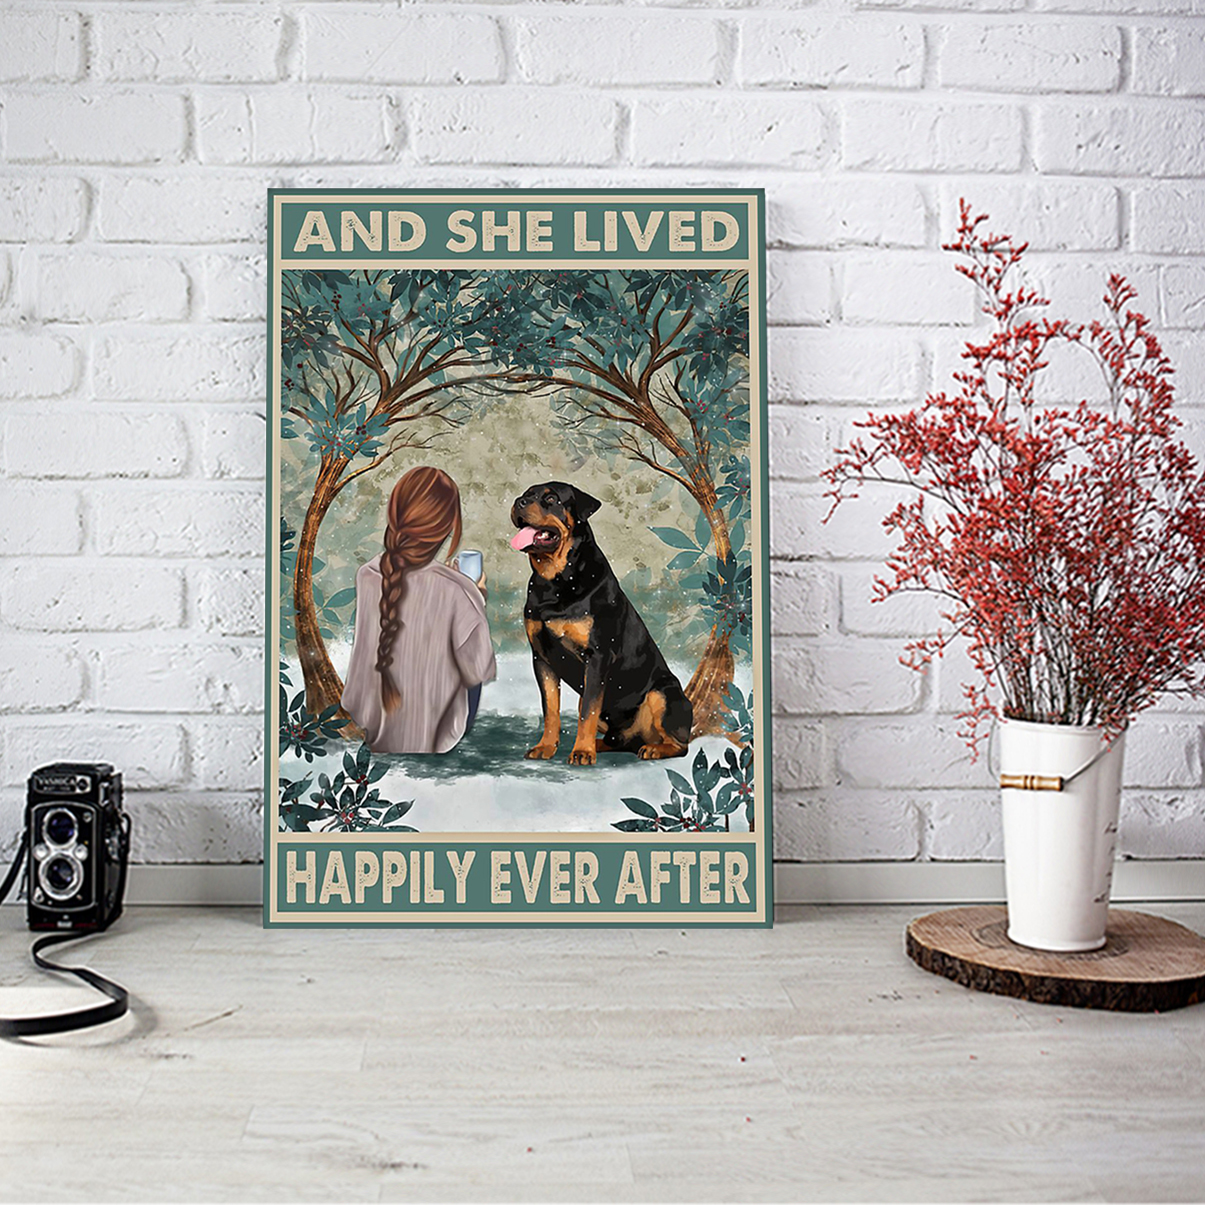 Rottweiler and she lived happily ever after poster A2